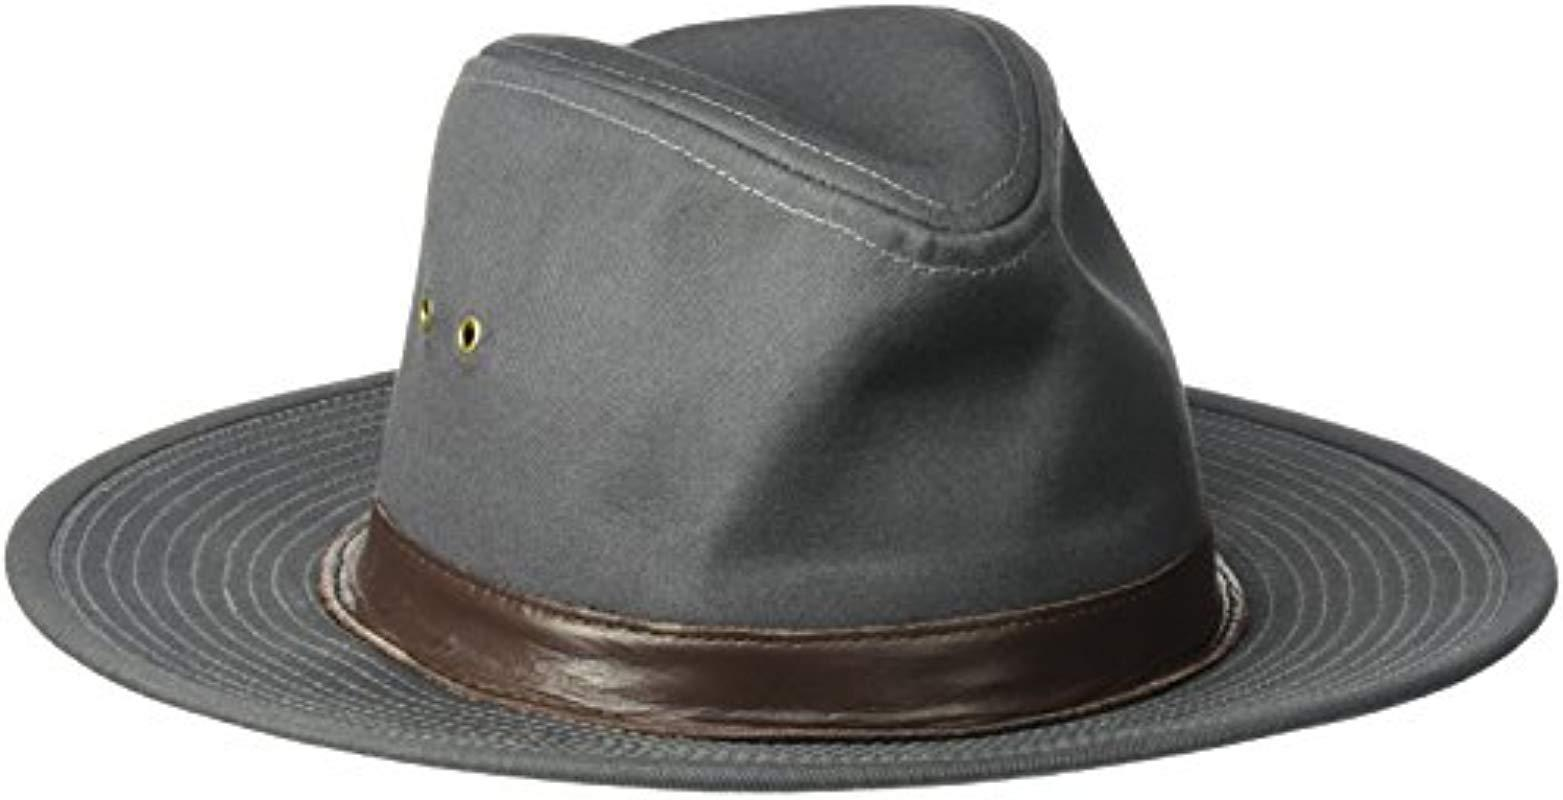 ba93f07bcc2 Lyst - Goorin Bros Florence Lake Weather Resistant Wide Brim Fedora ...